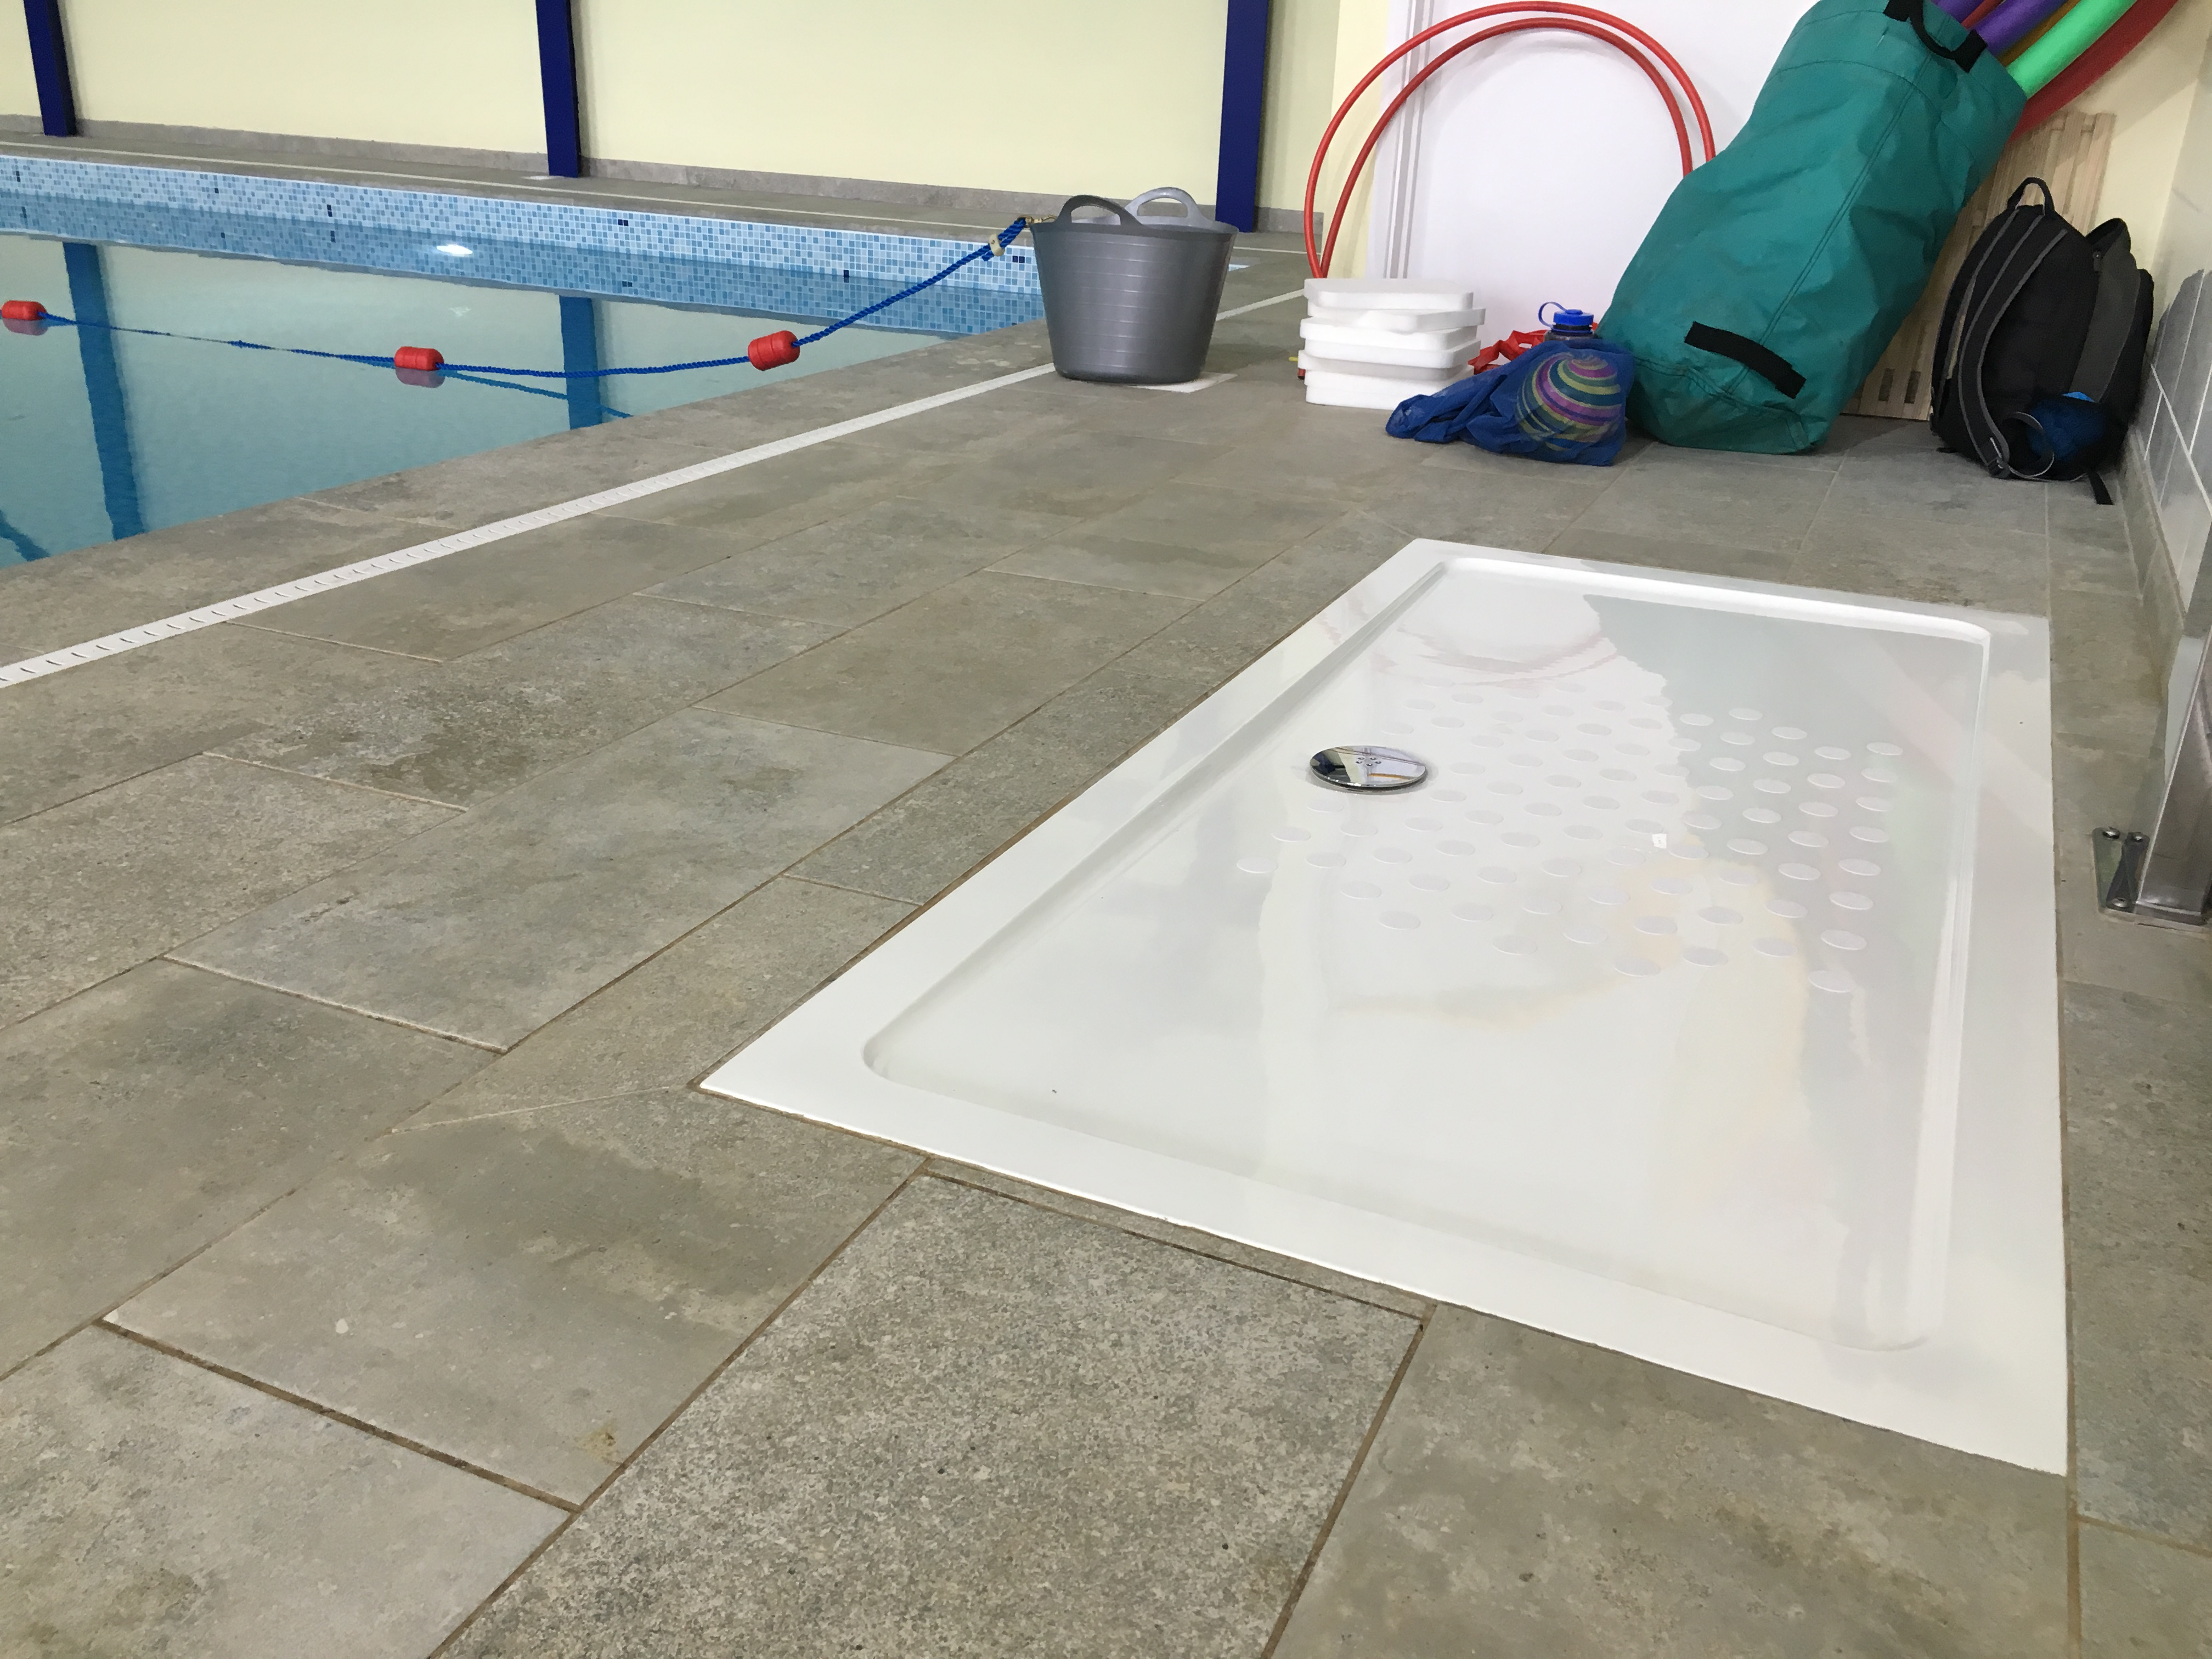 Swimming Pool Showering : Safer showers at swimming pool non slip bath